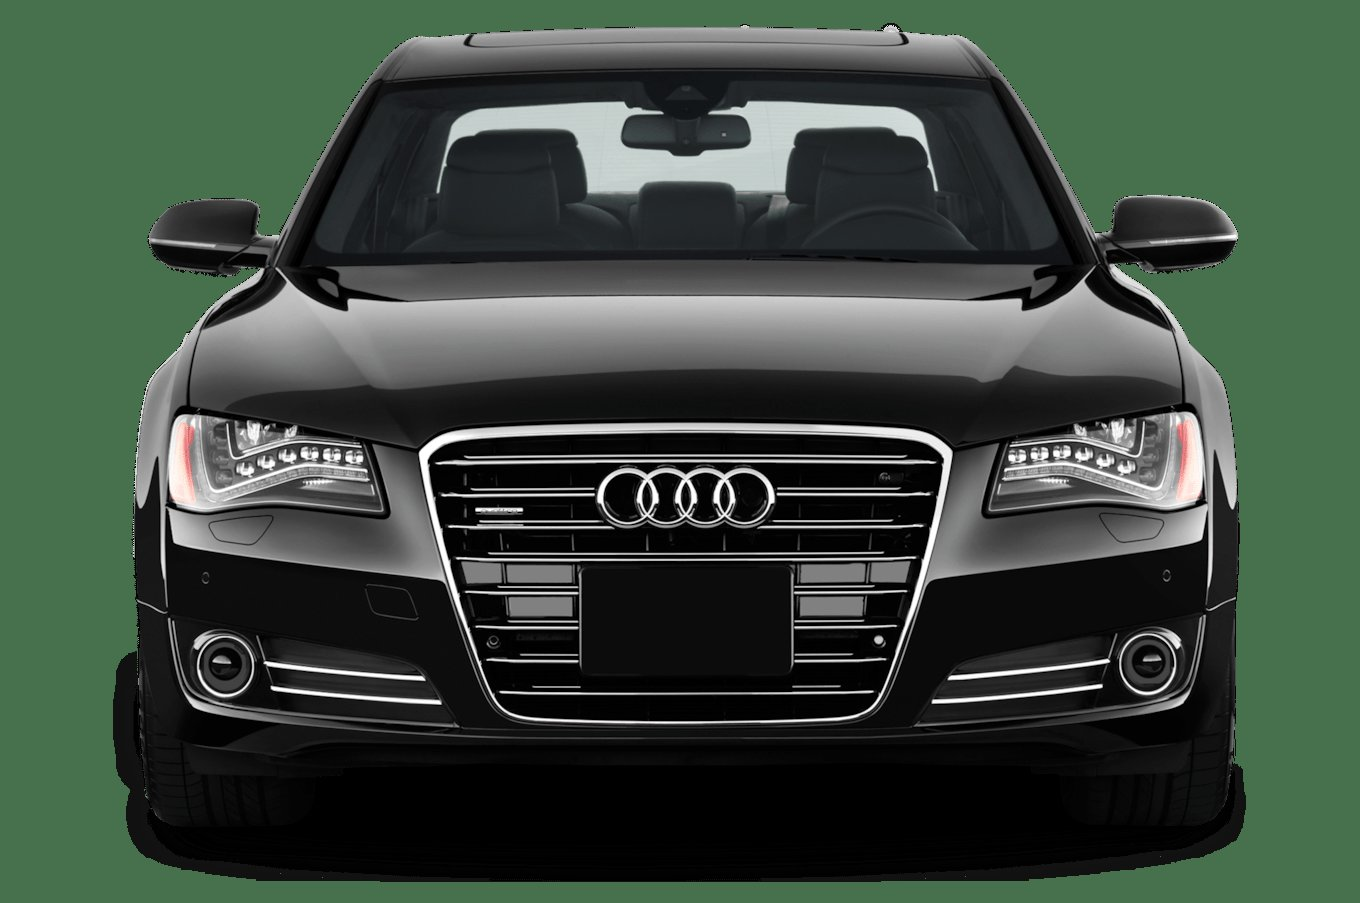 Latest 2012 Audi A8 Free Download